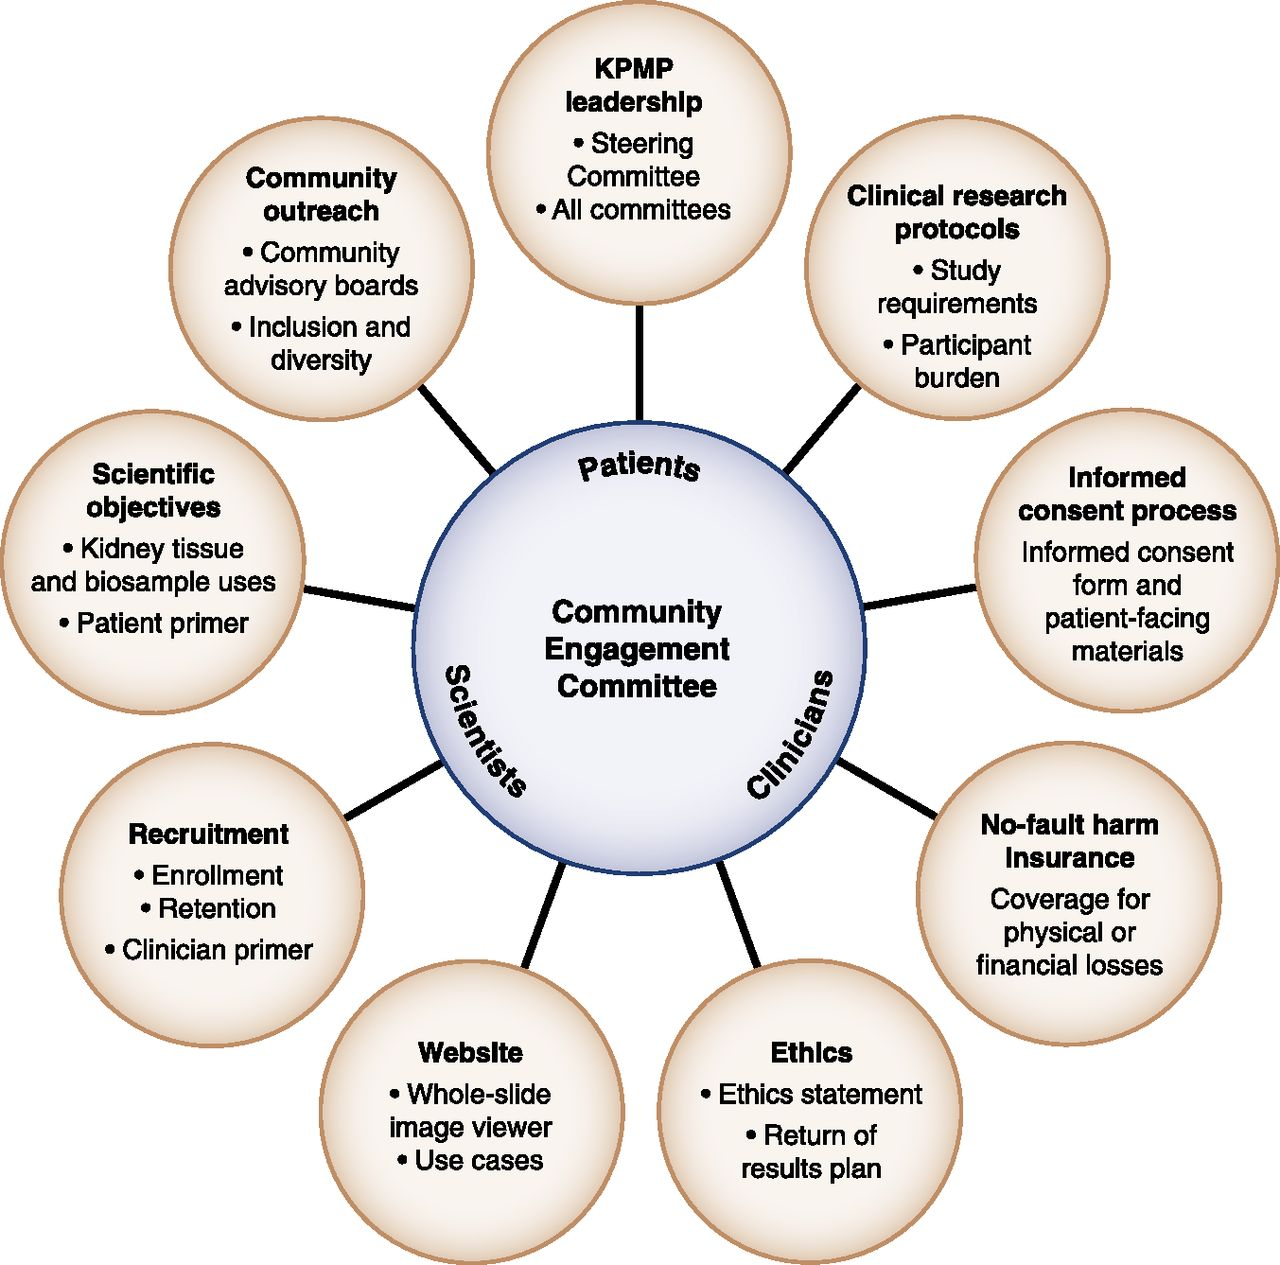 KPMP Community Engagement Committee publishes in CJASN